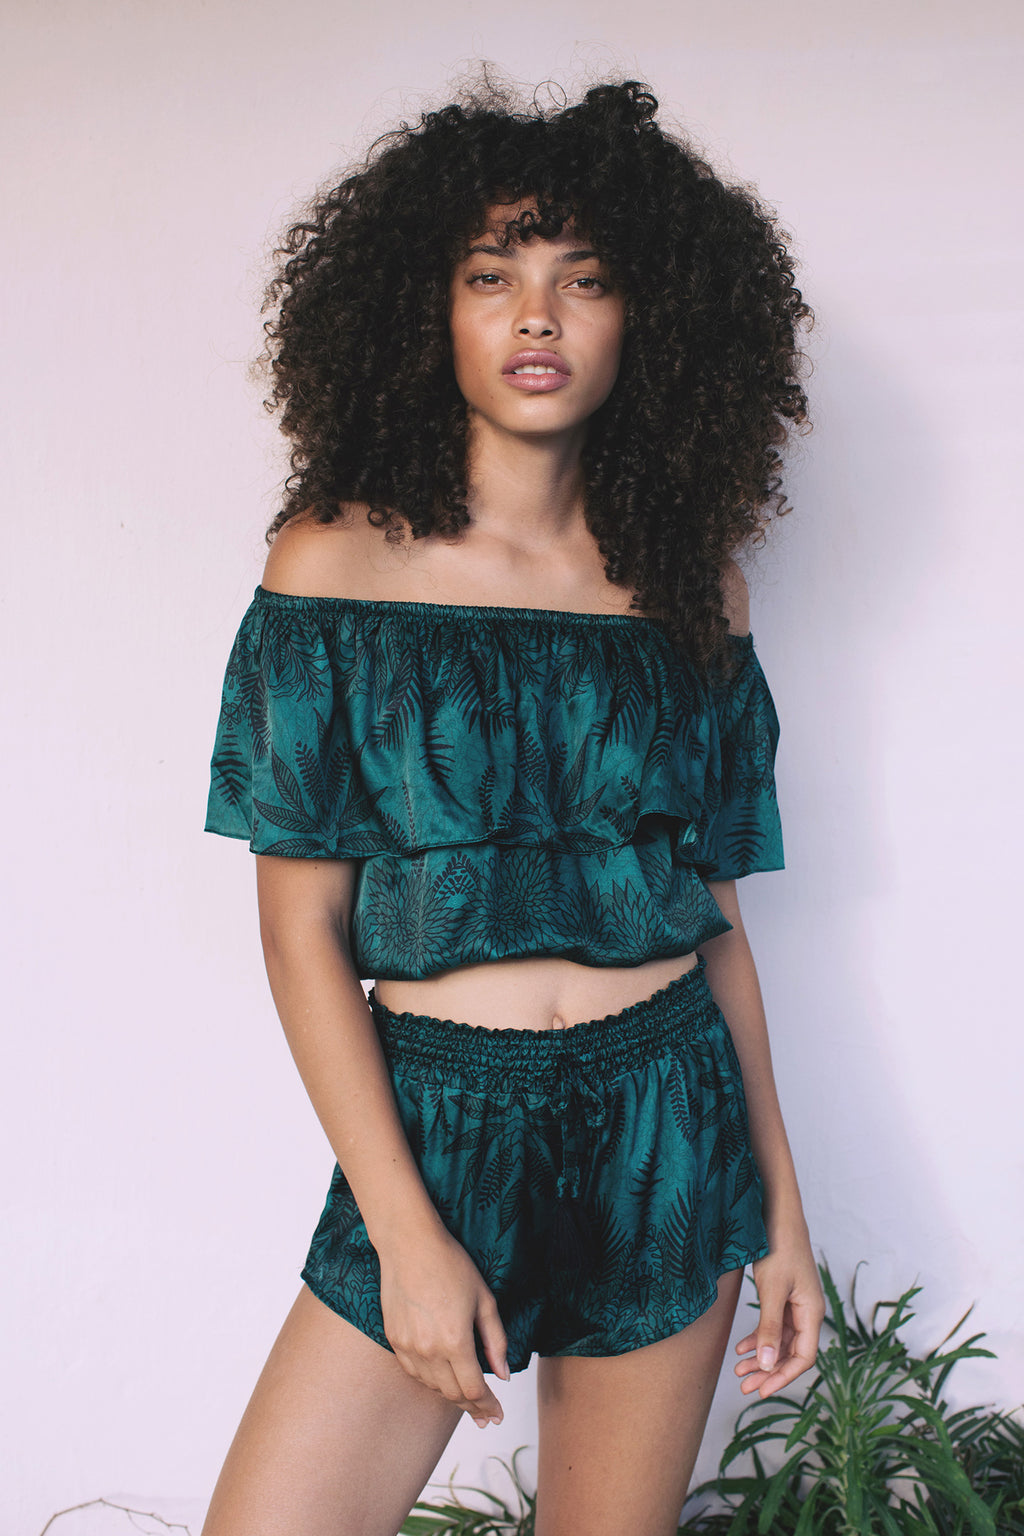 Crop top in Soul Tree print. A deep emerald background  with  black fern silhouette pattern.